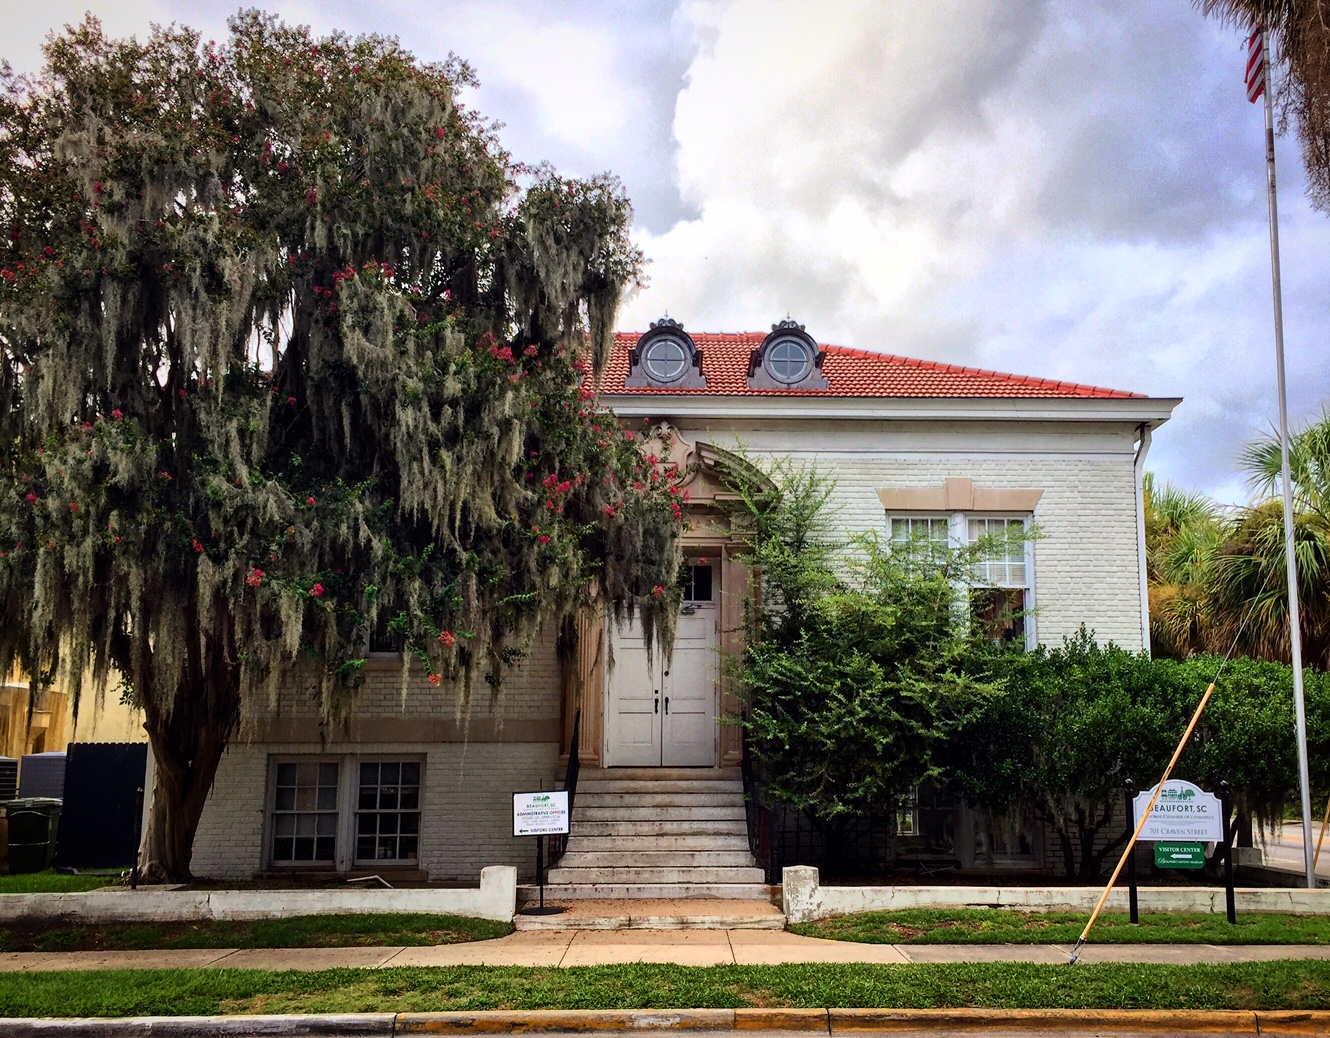 English: Old Beaufort (SC) Public Library Date 27 July 2017, 19:04:23 Source Own work Author 2cooljohn